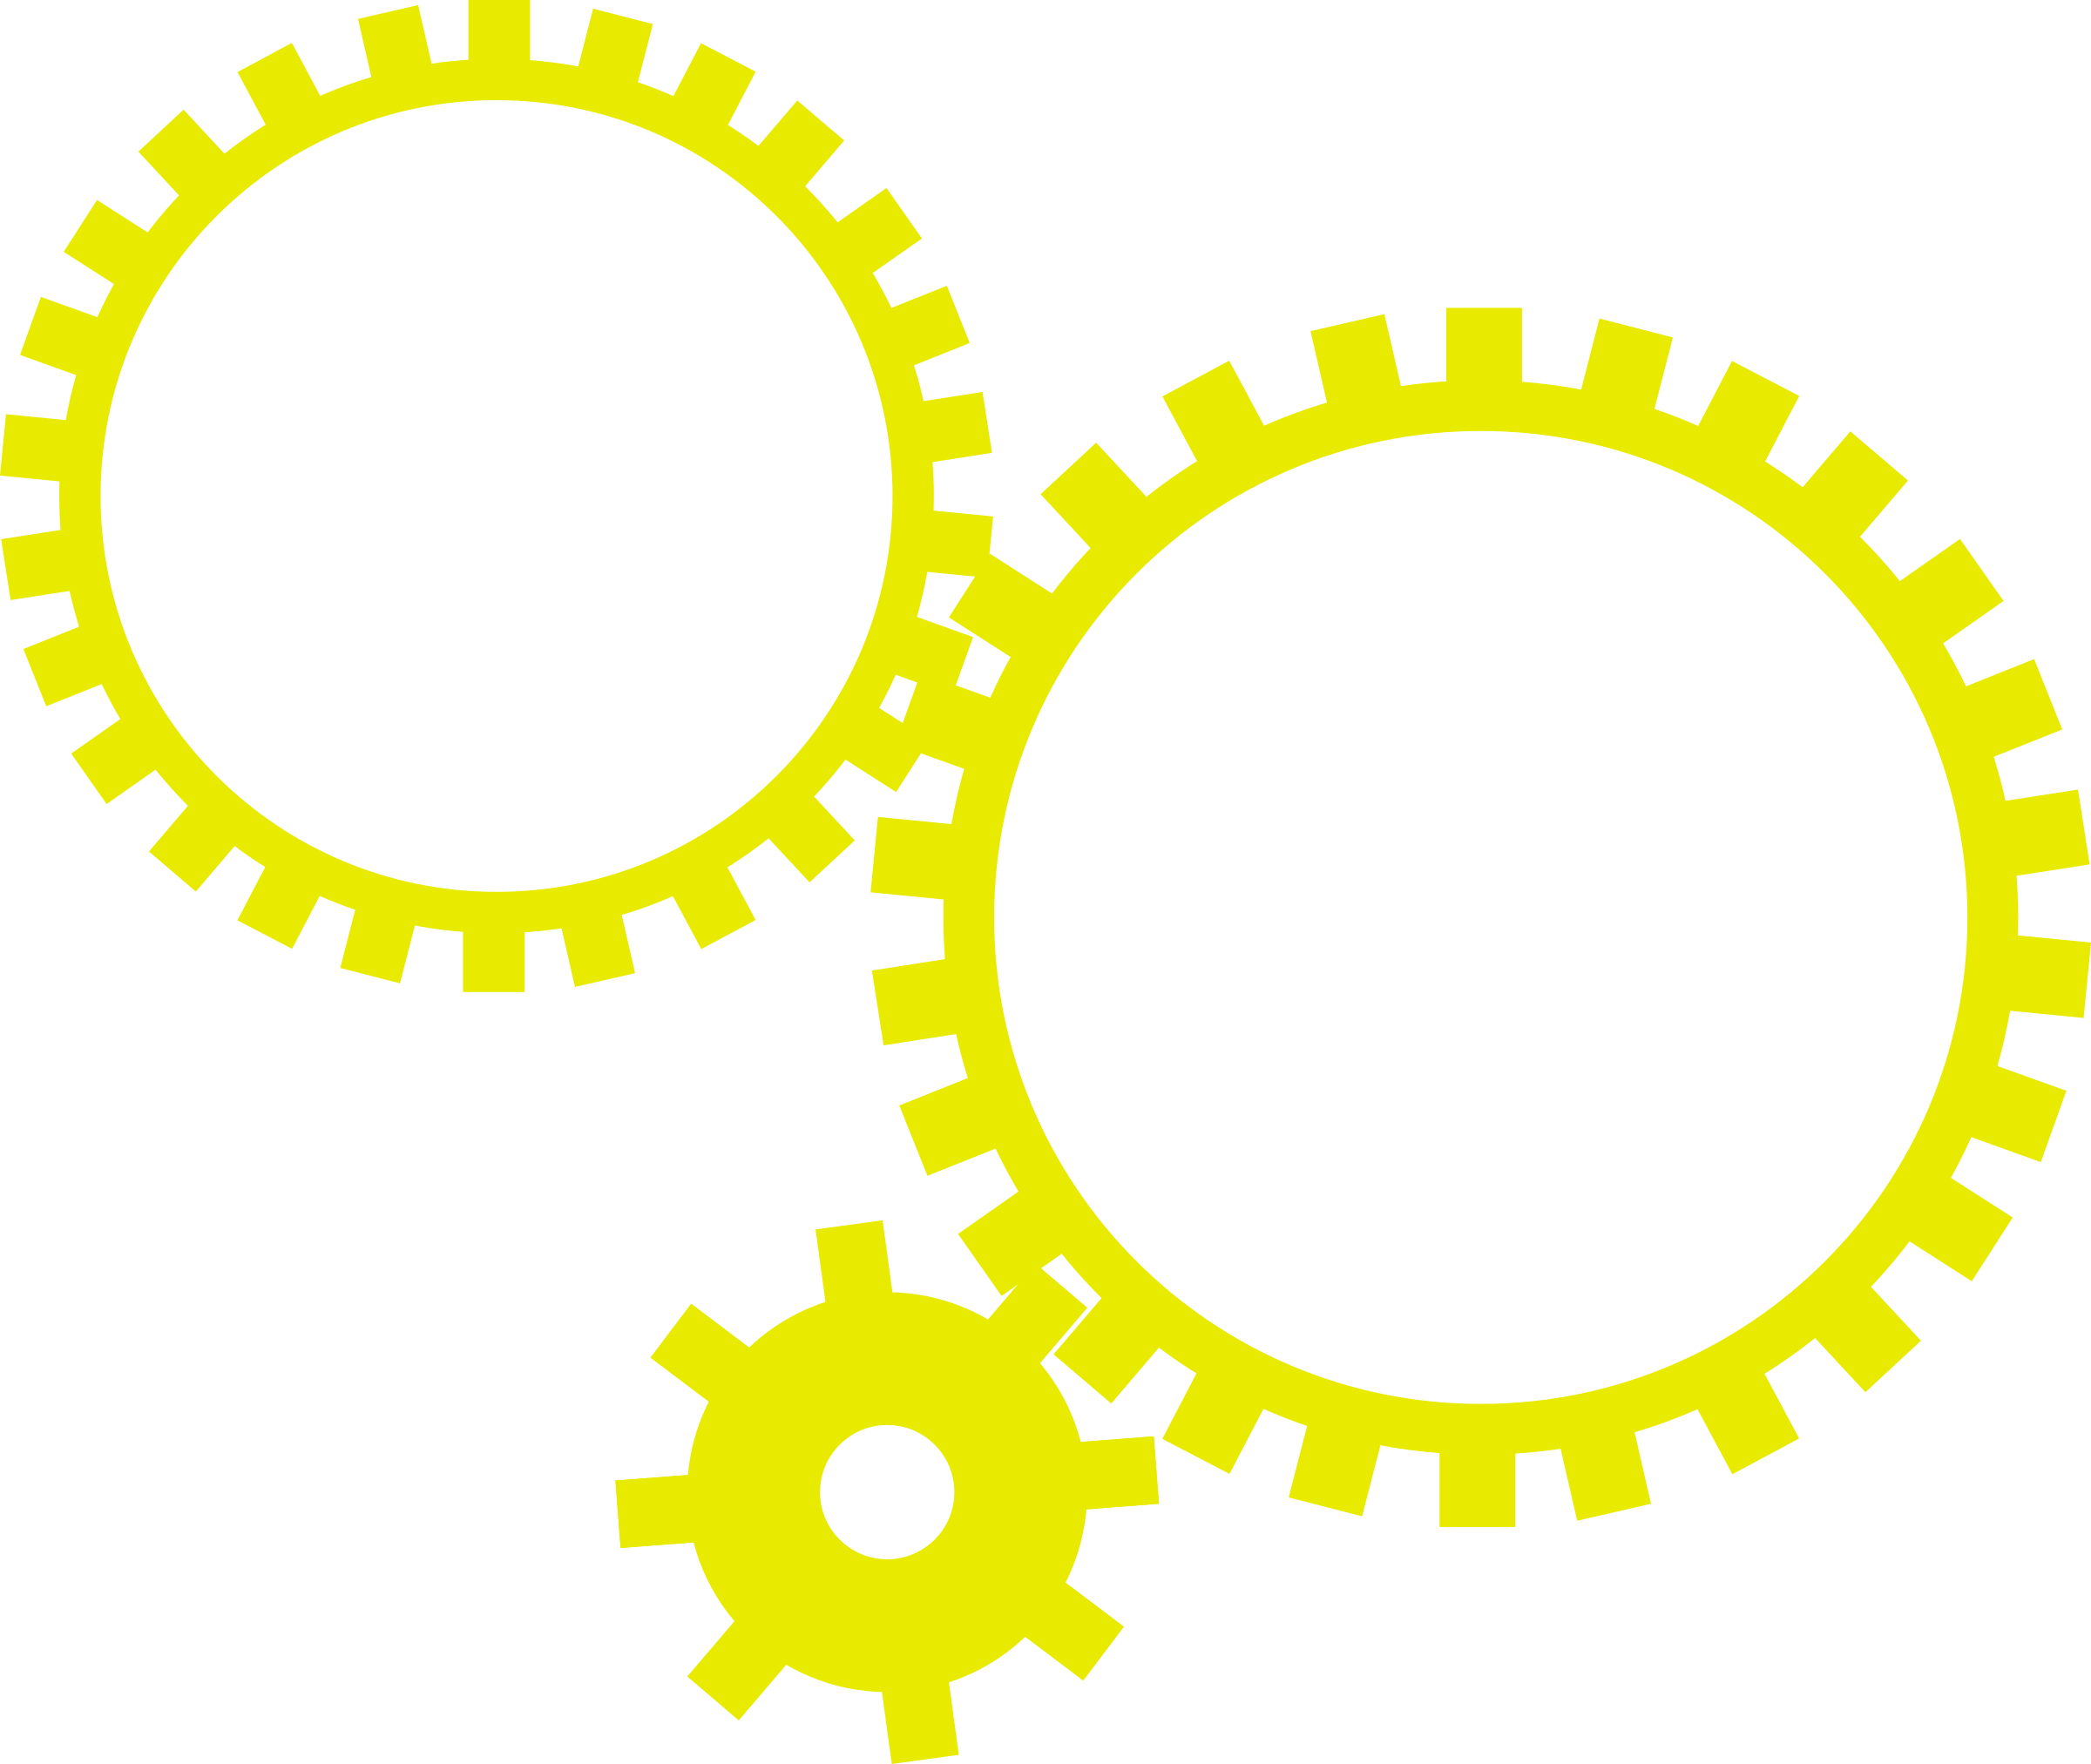 Gear clipart yellow gear. Big image png